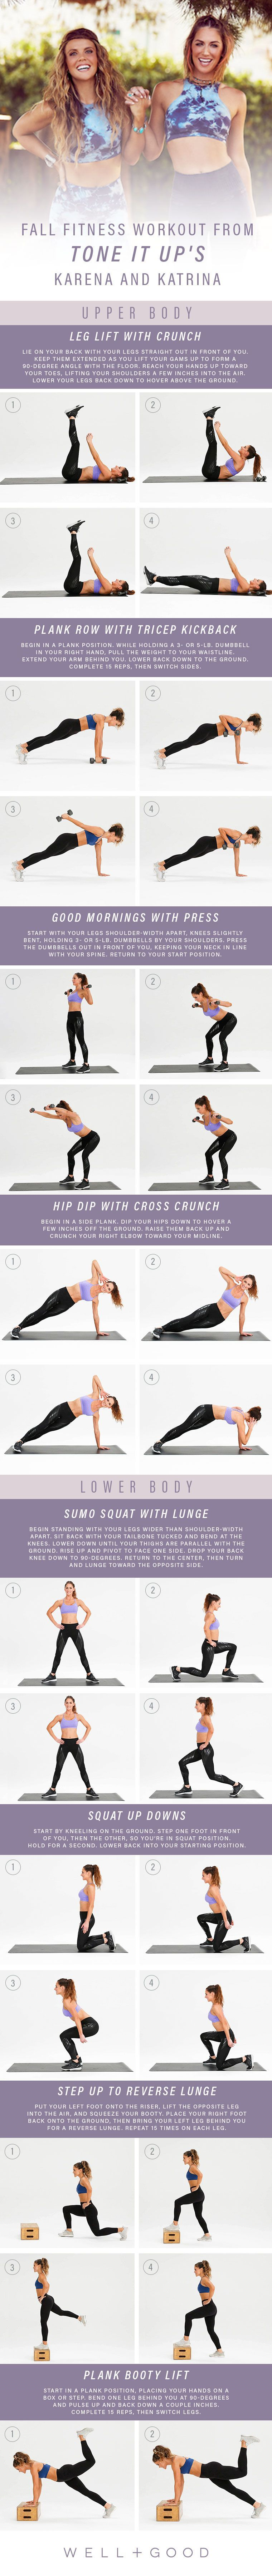 Tone It Up fall fitness workout plan | Well+Good,  #fall #Fitness #Plan #tone #WellGood #Workout #wo...